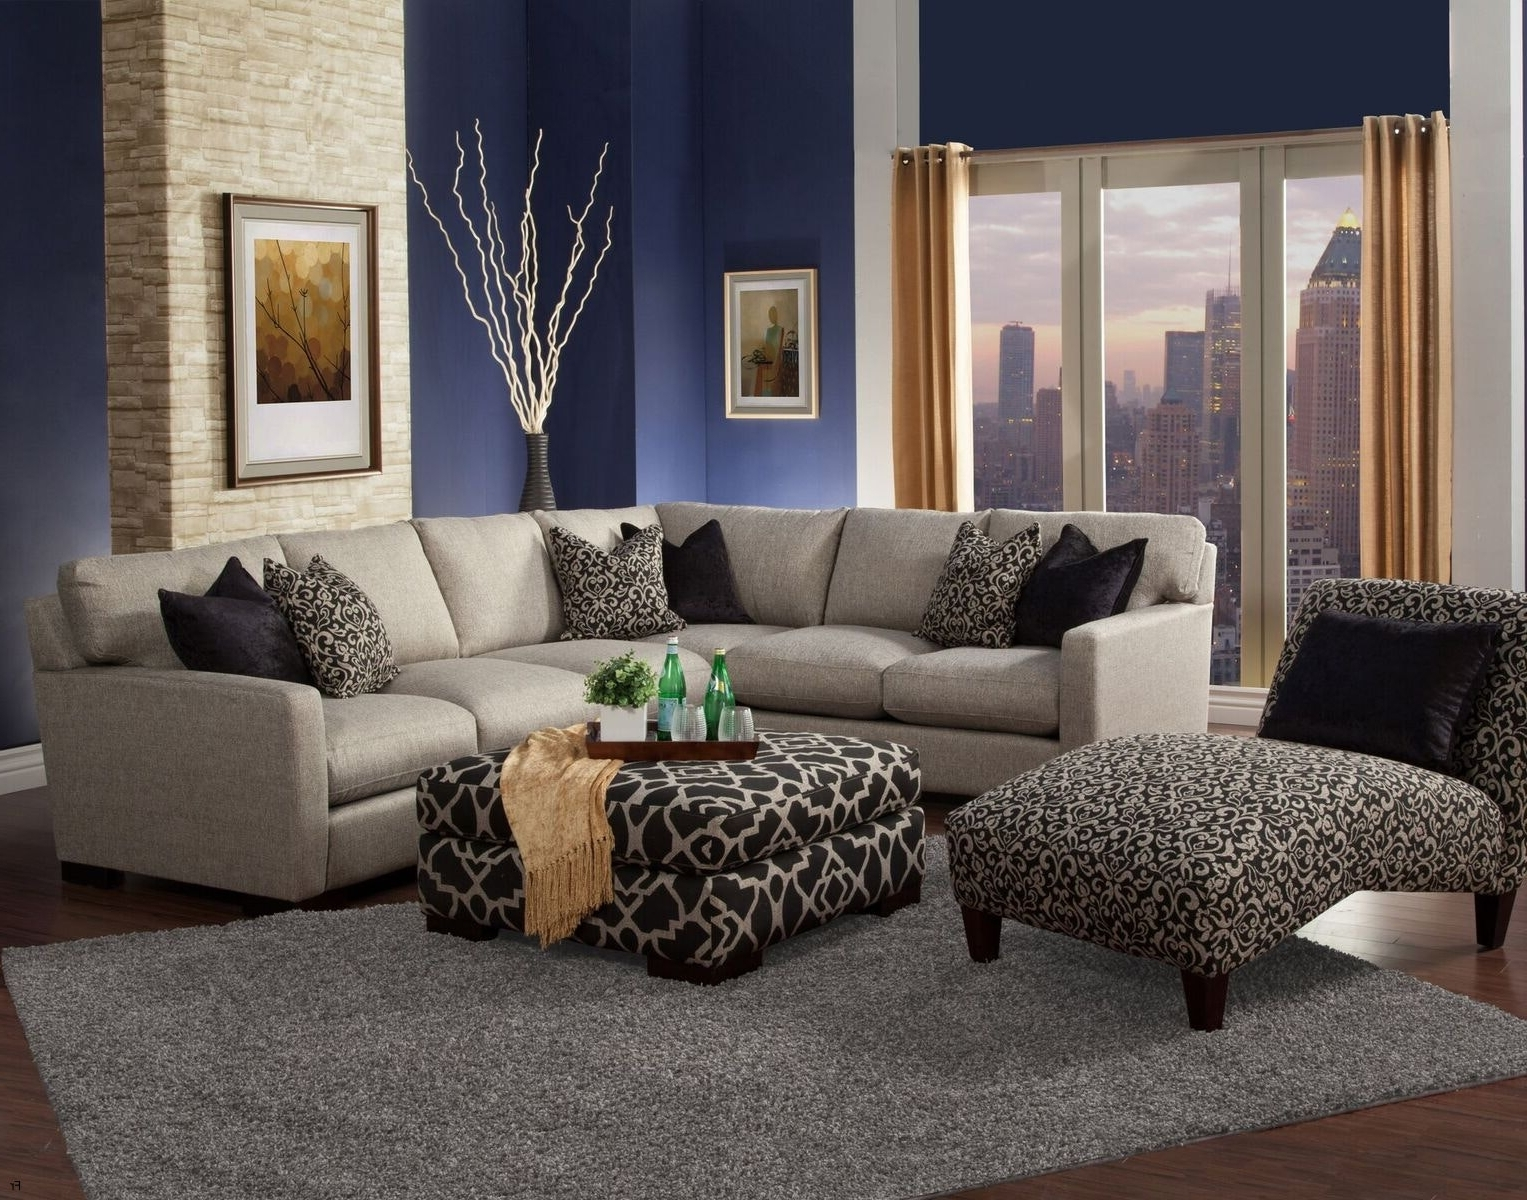 Best And Newest Excellent Reclining Sectional Sofas Microfiber 62 For Your Goose With Regard To Goose Down Sectional Sofas (View 1 of 15)